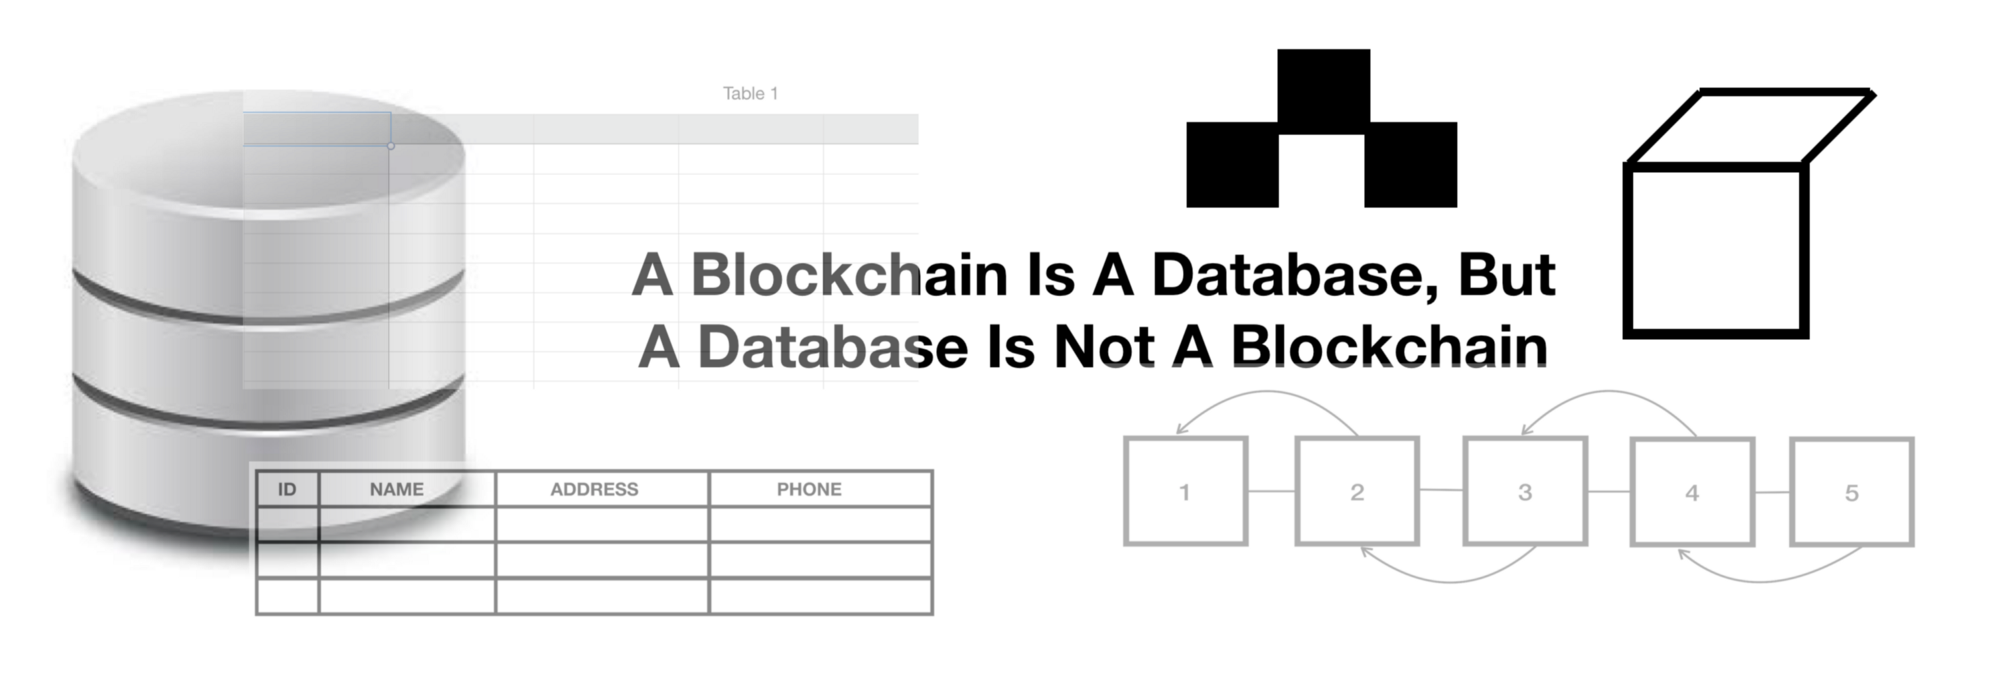 Databases And Blockchains The Difference Is In Their Purpose Design Database Level Security